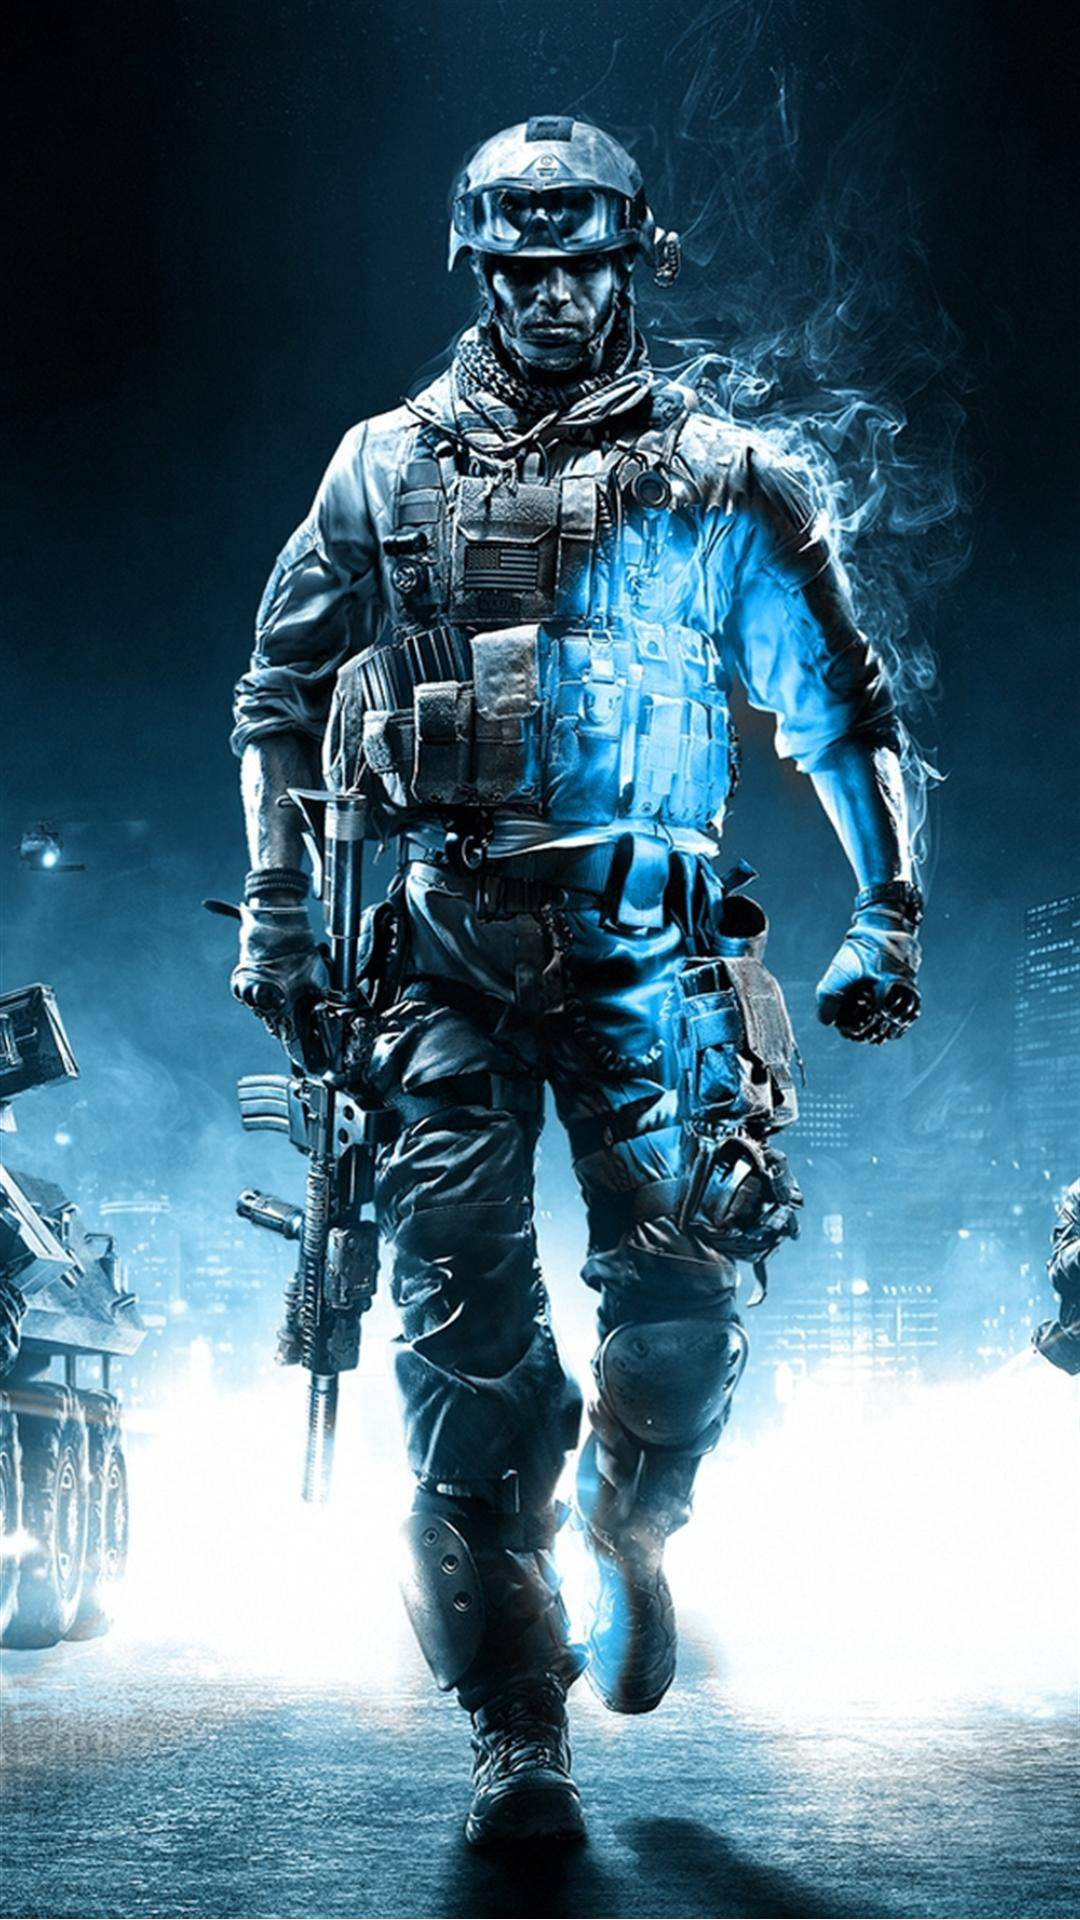 Wallpapers Call Of Duty Posted By Ryan Anderson